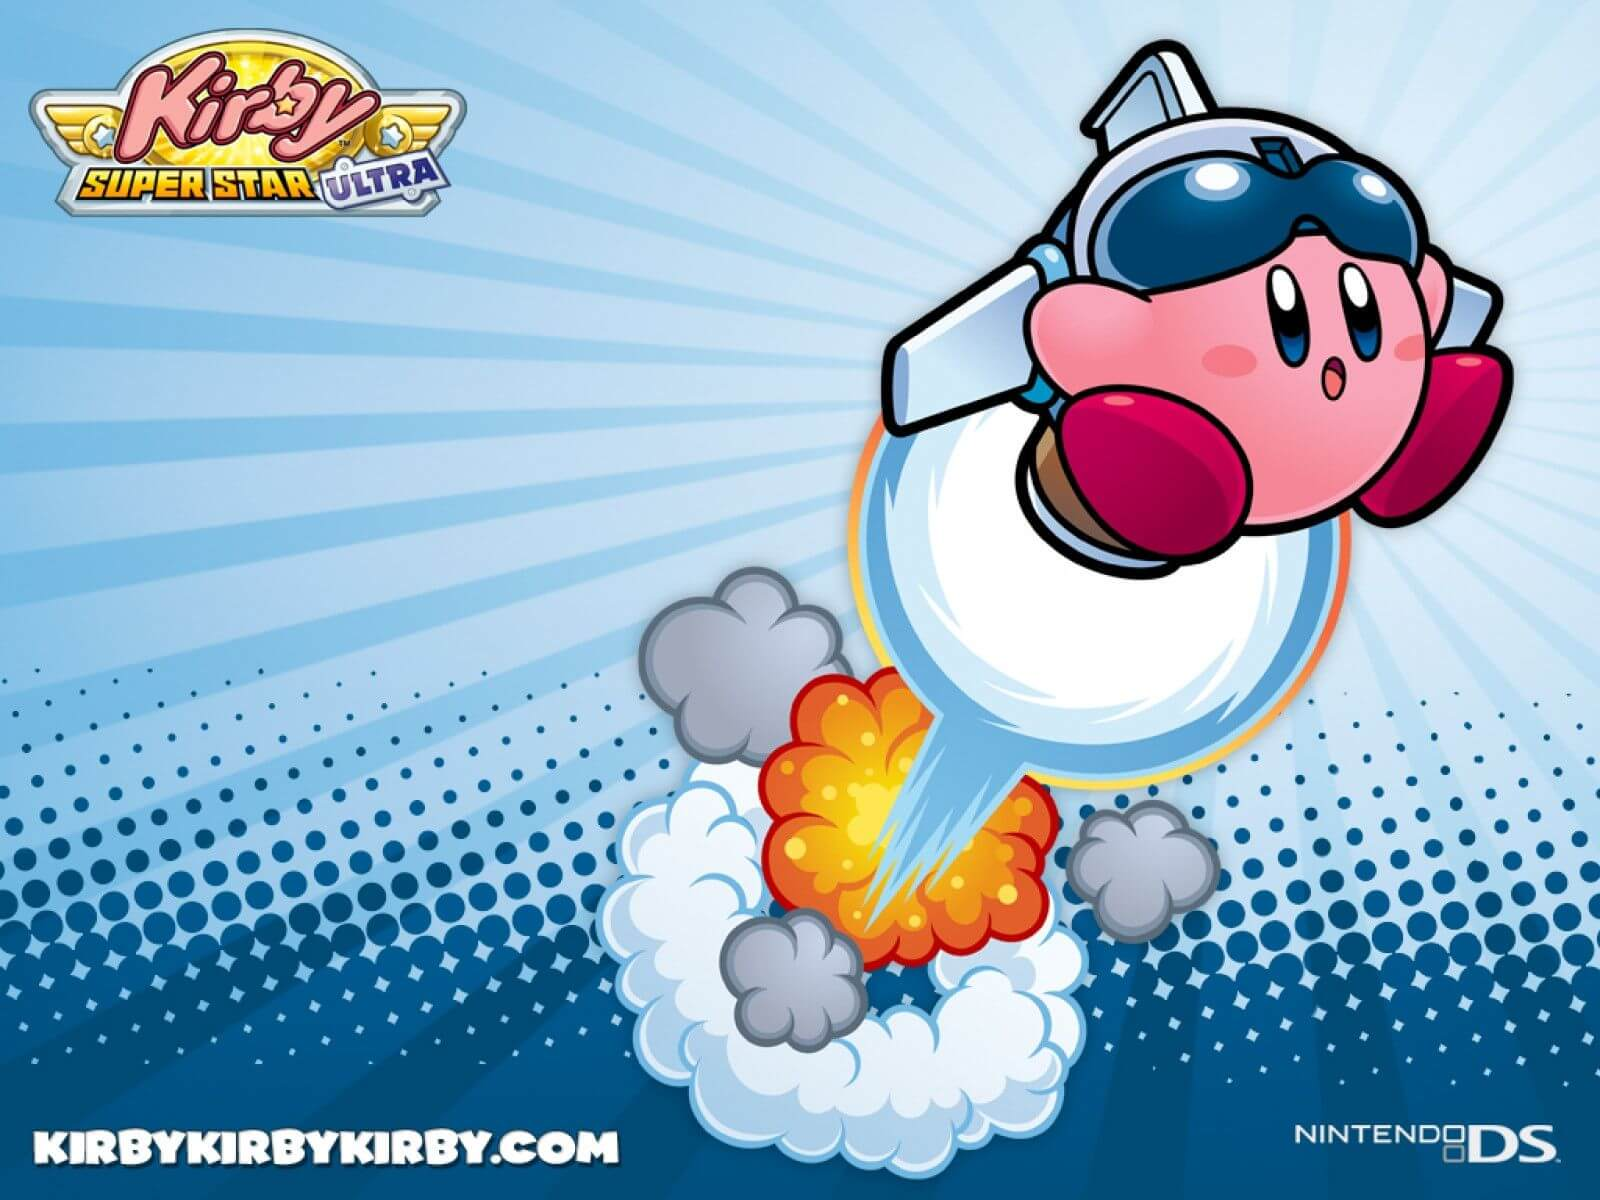 Kirby Videogame HD Background